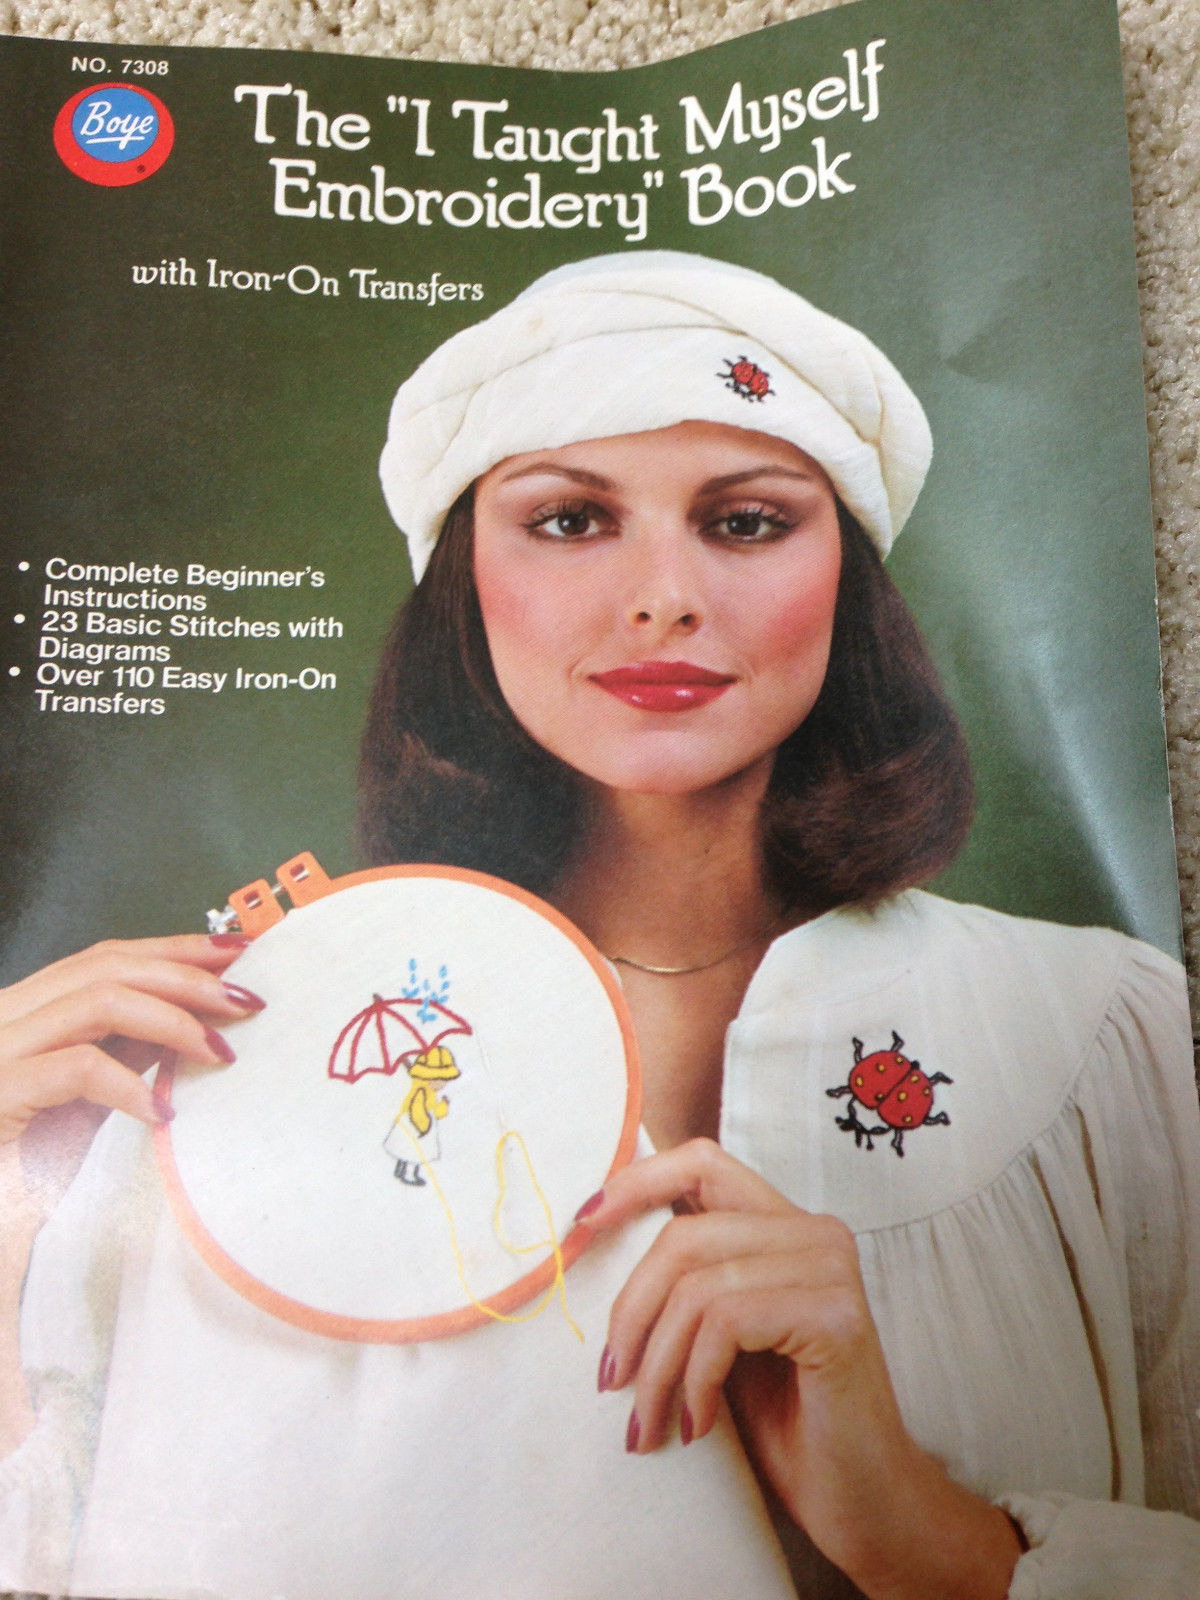 """Vtg 1976 THE """"I TAUGHT MYSELF EMBROIDERY"""" BOOK WITH IRON ON TRANSFERS Free Ship - $5.65"""